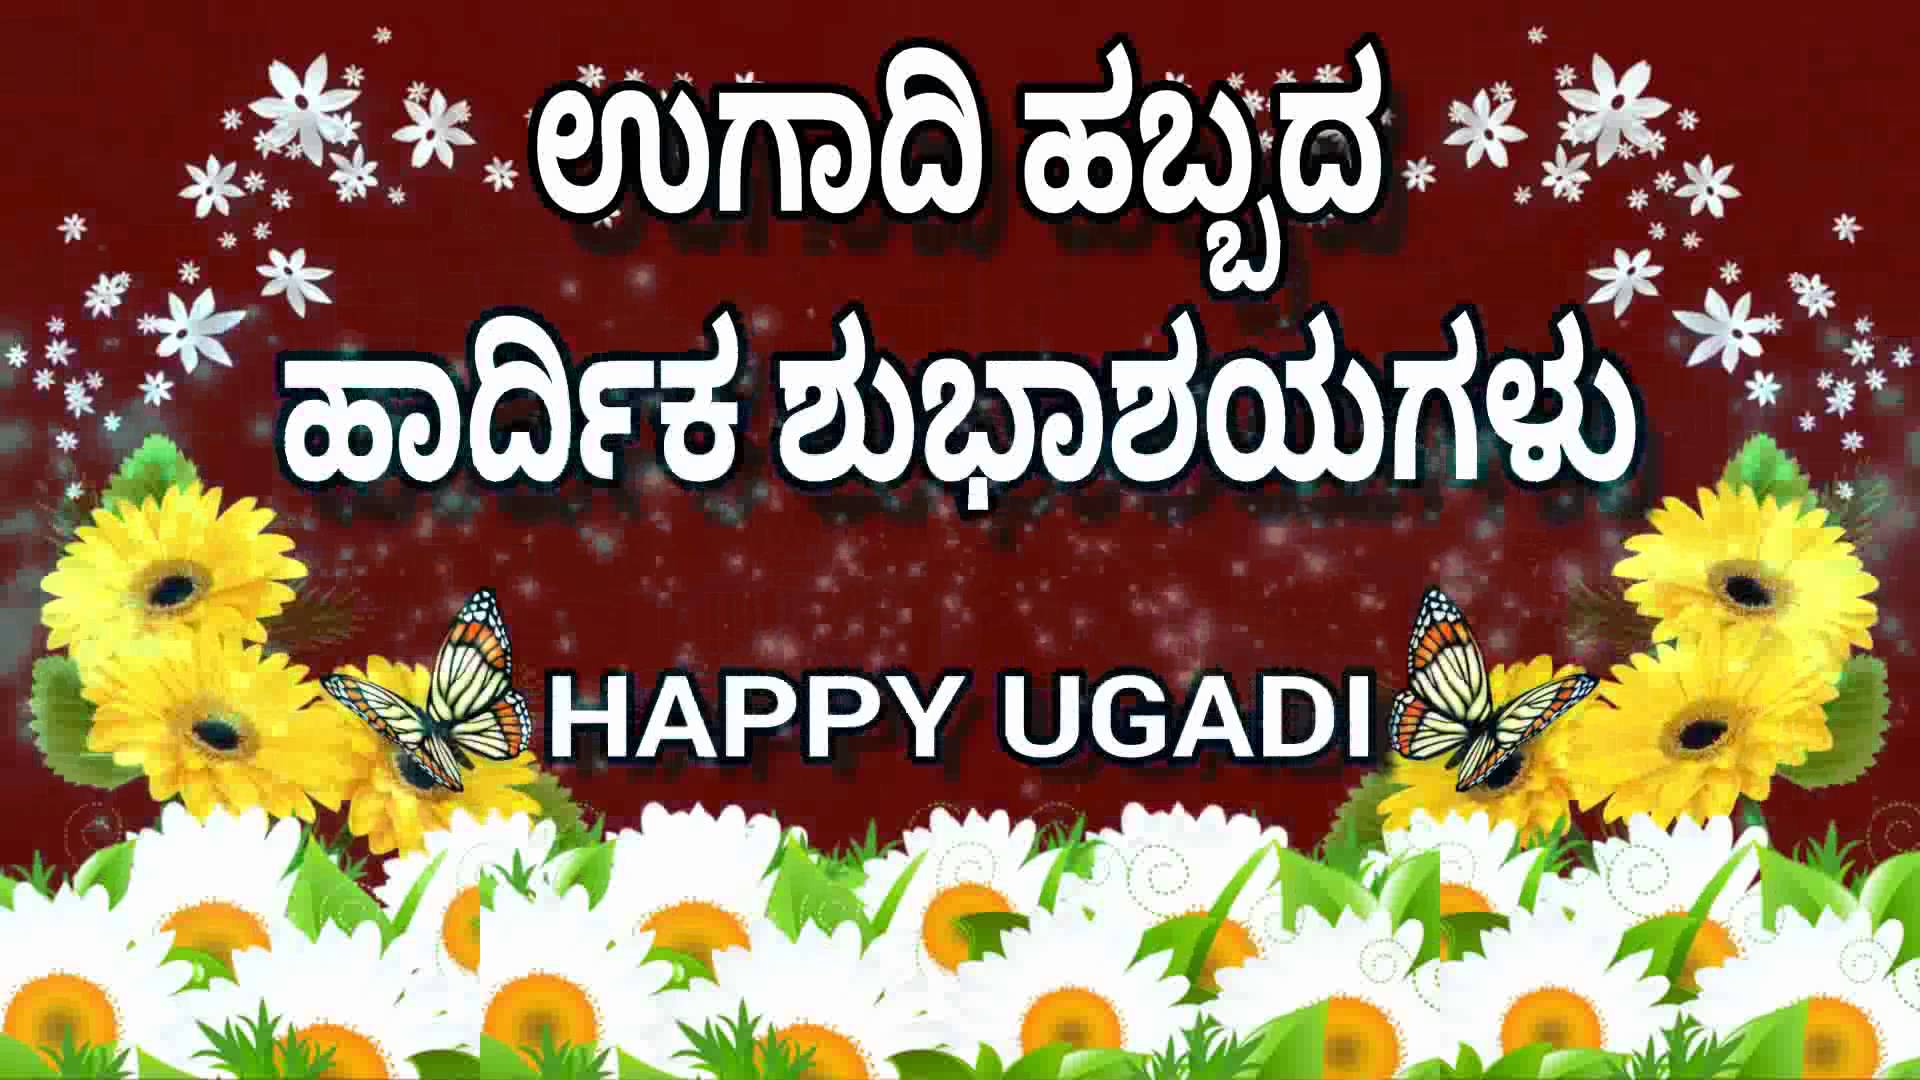 Ugadi Wishes Whatsapp Status